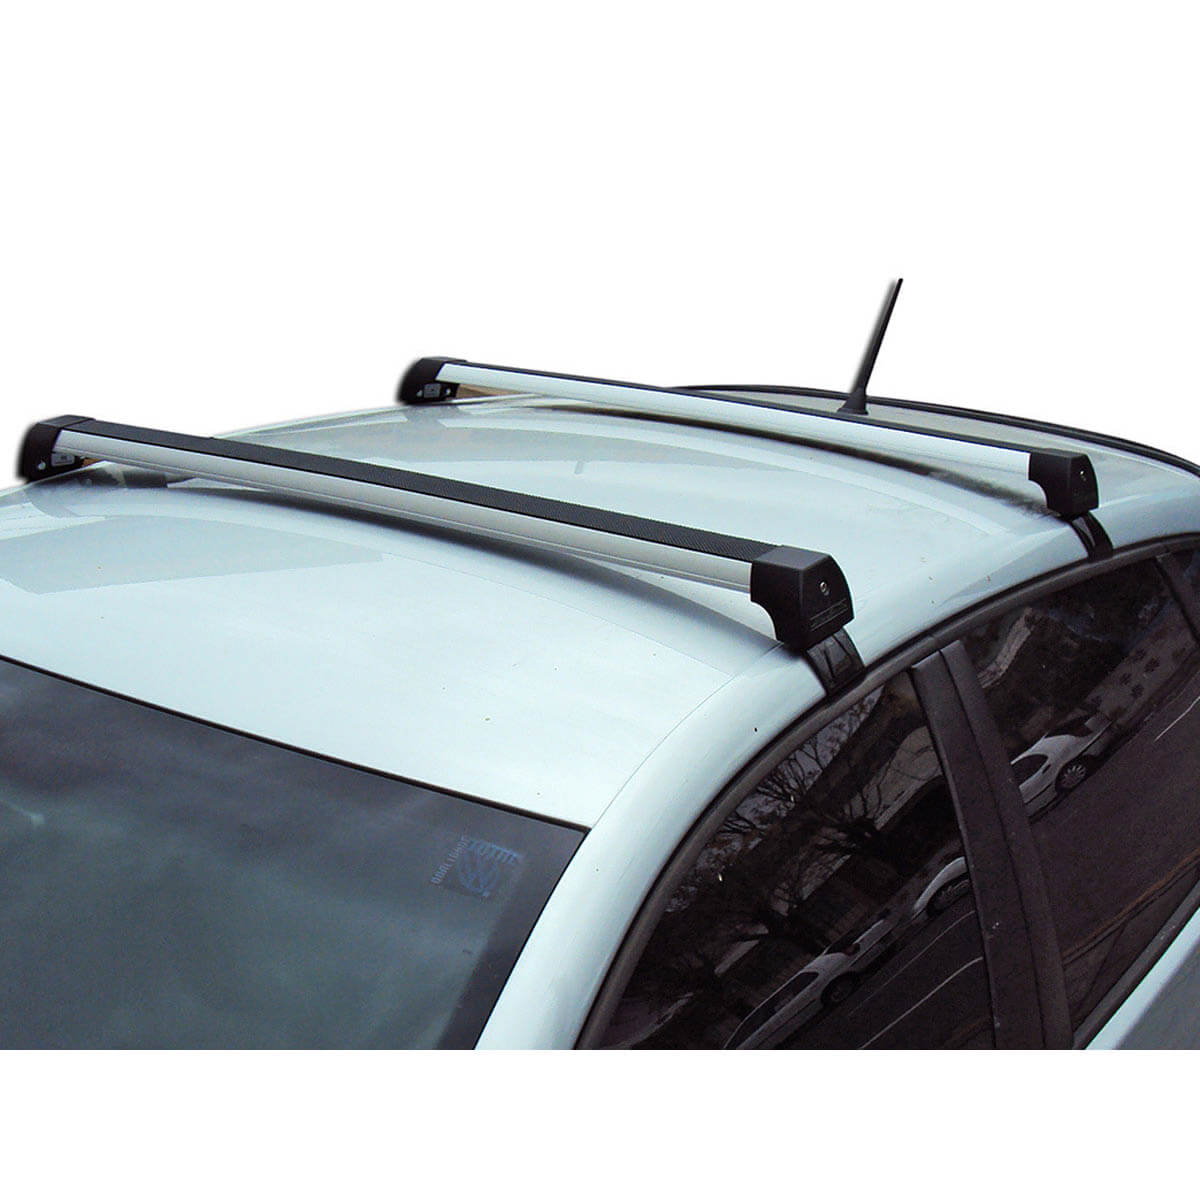 Rack de teto Fit 2009 a 2014 Long Life Sports anodizado